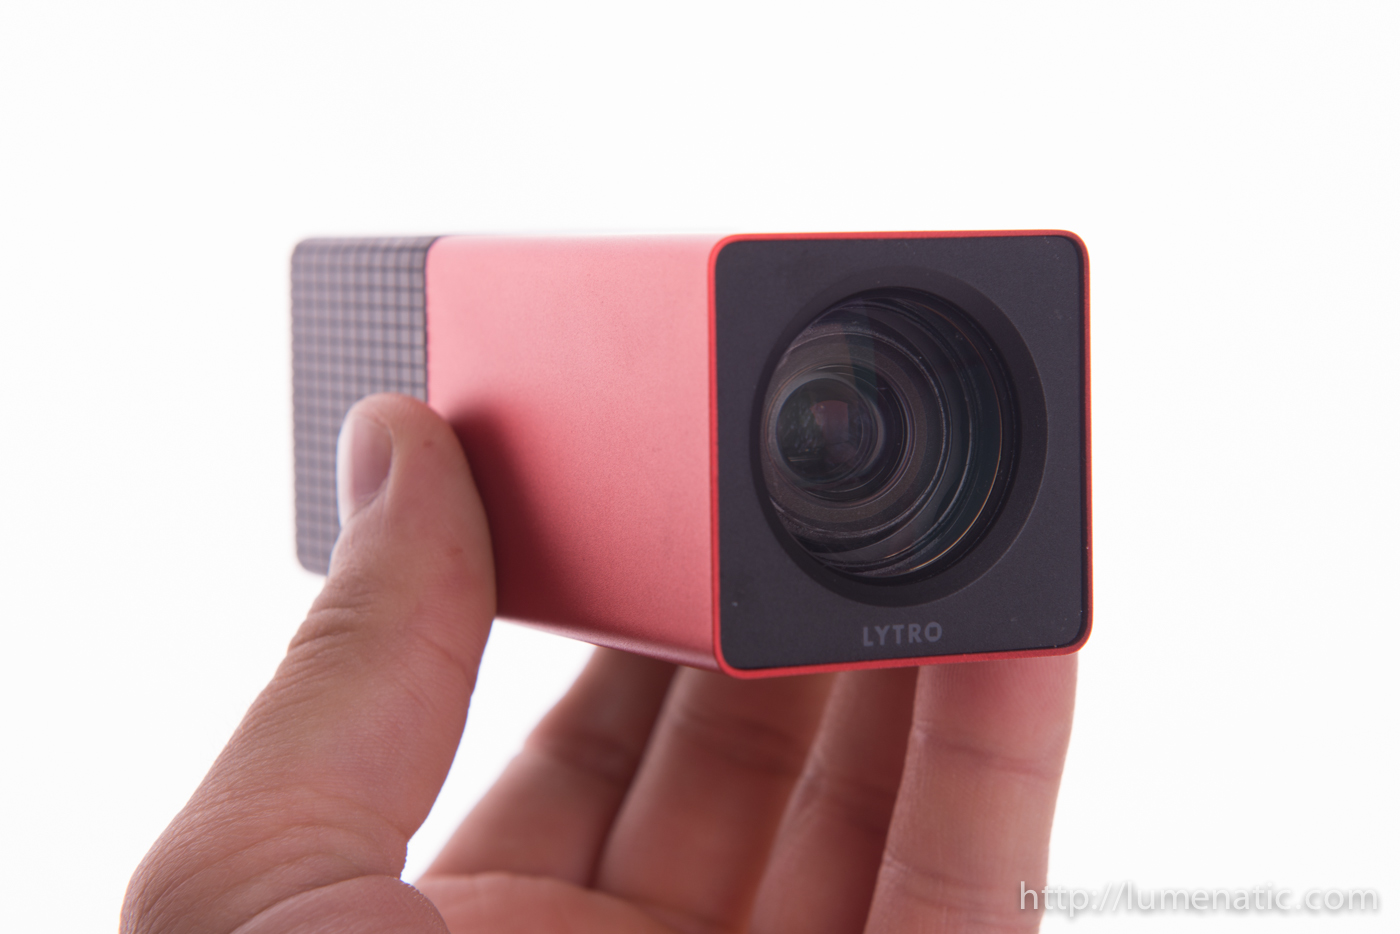 For Sale: Lytro 16 GB lightfield camera (SOLD)